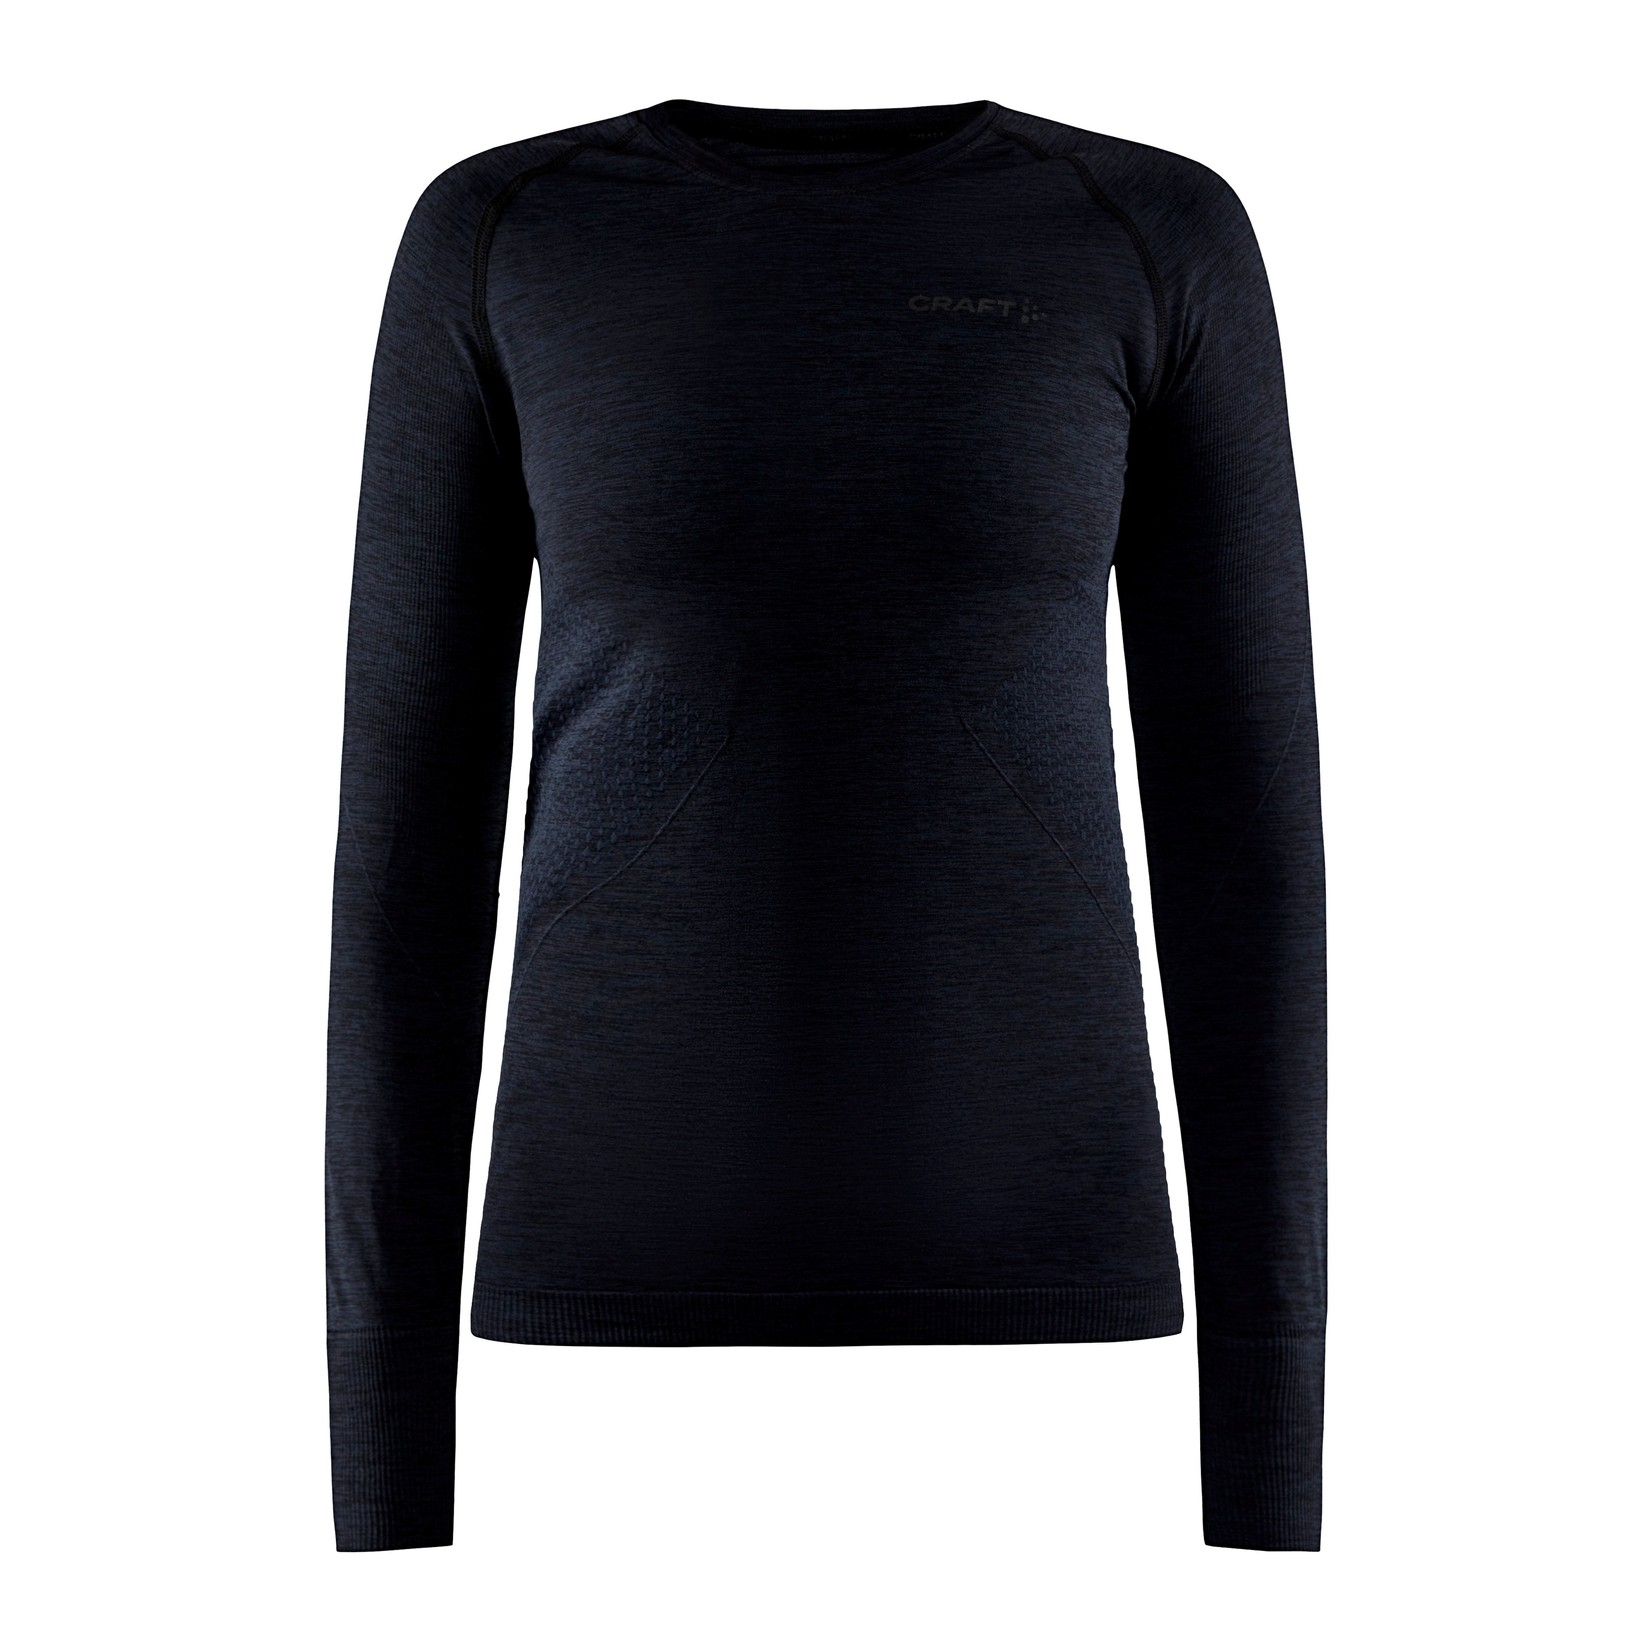 Craft Craft Core Dry Active Comfort Base Layer Top Women's